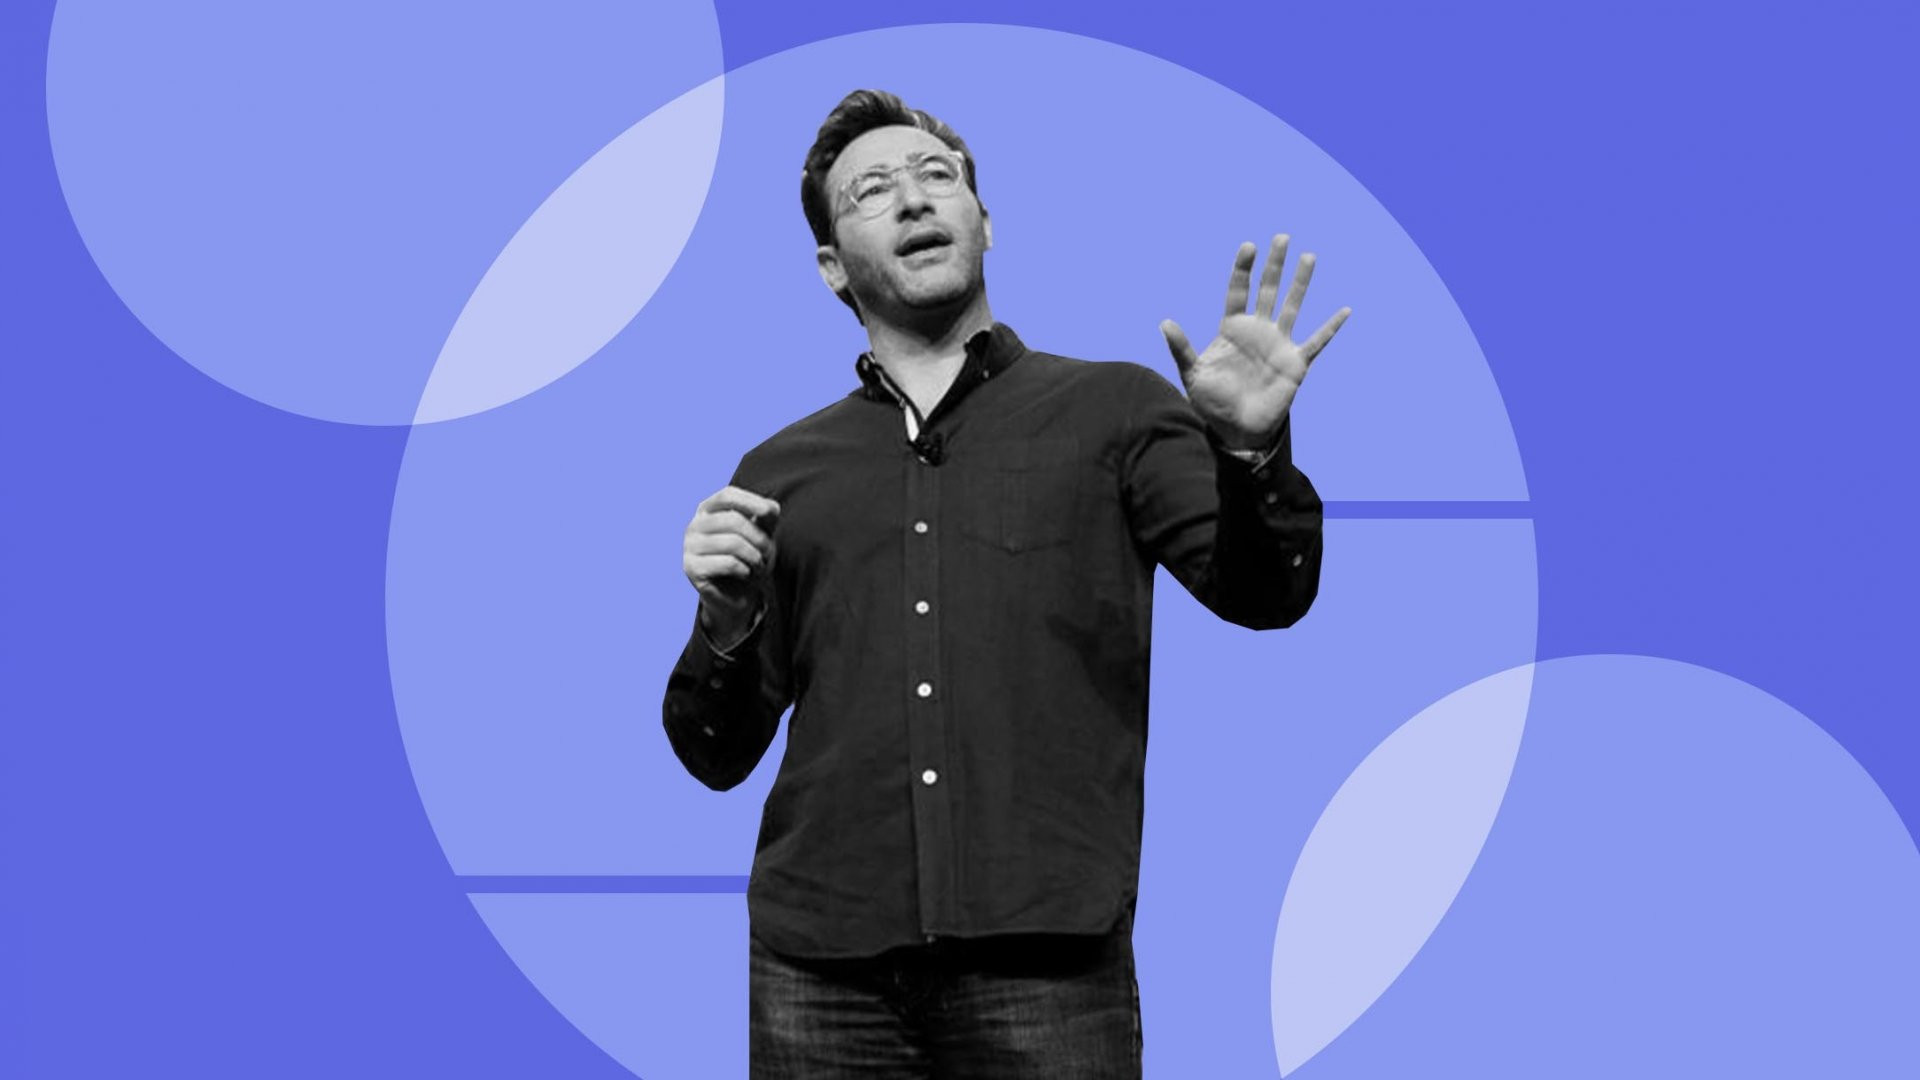 Watch: Simon Sinek on How to Lead Through Crisis and Change